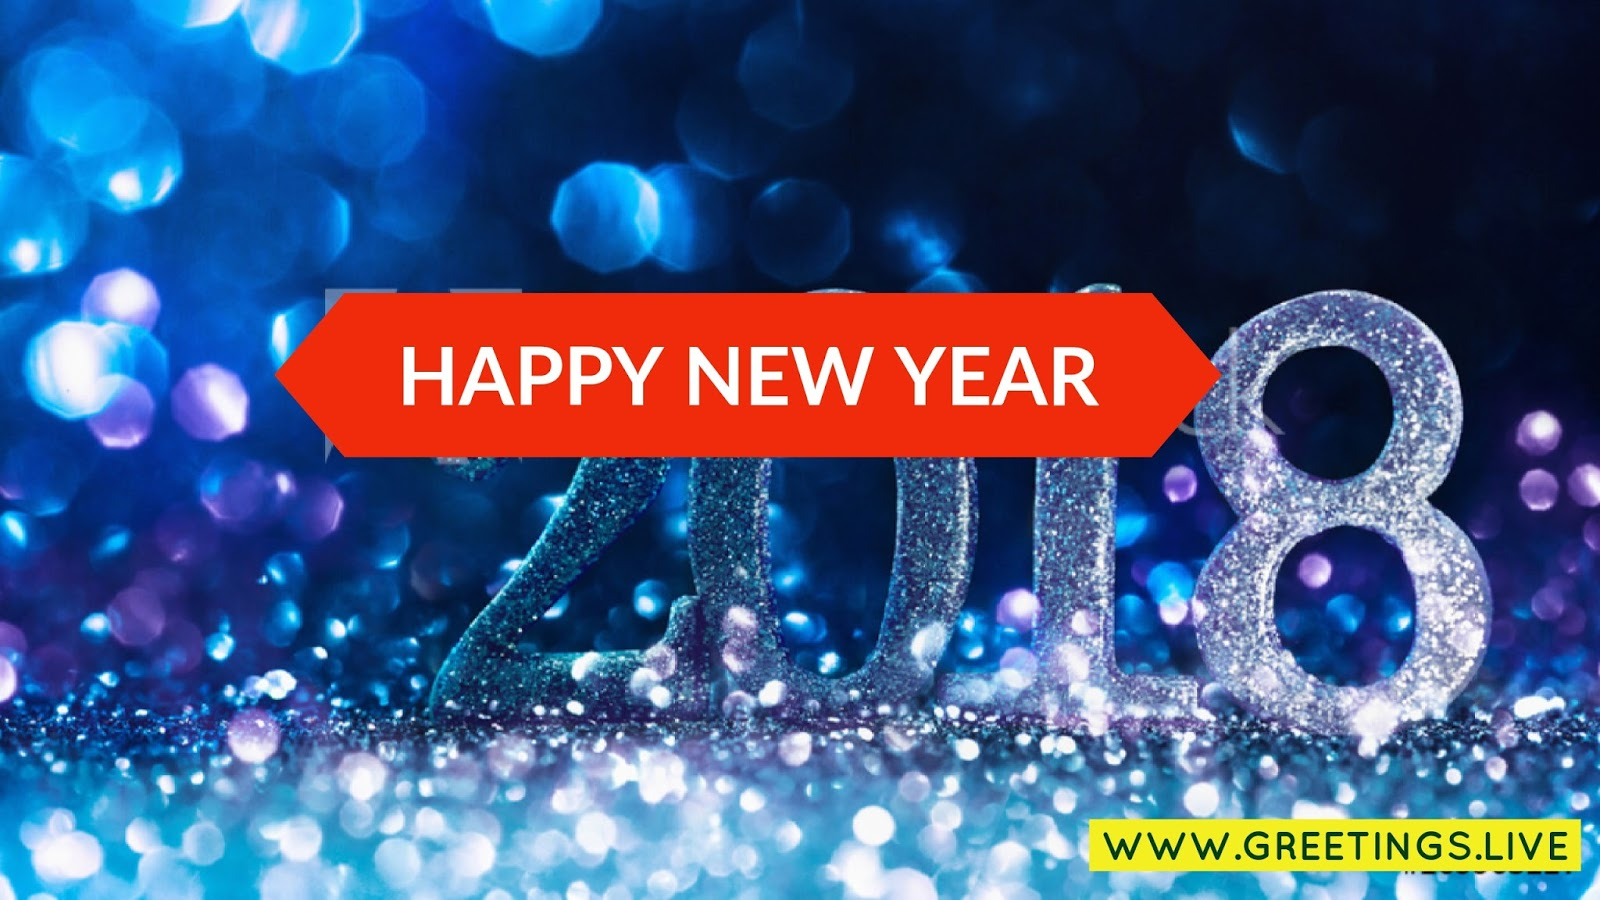 2018 New Year Wishes Greetings Best Images You Can Share On